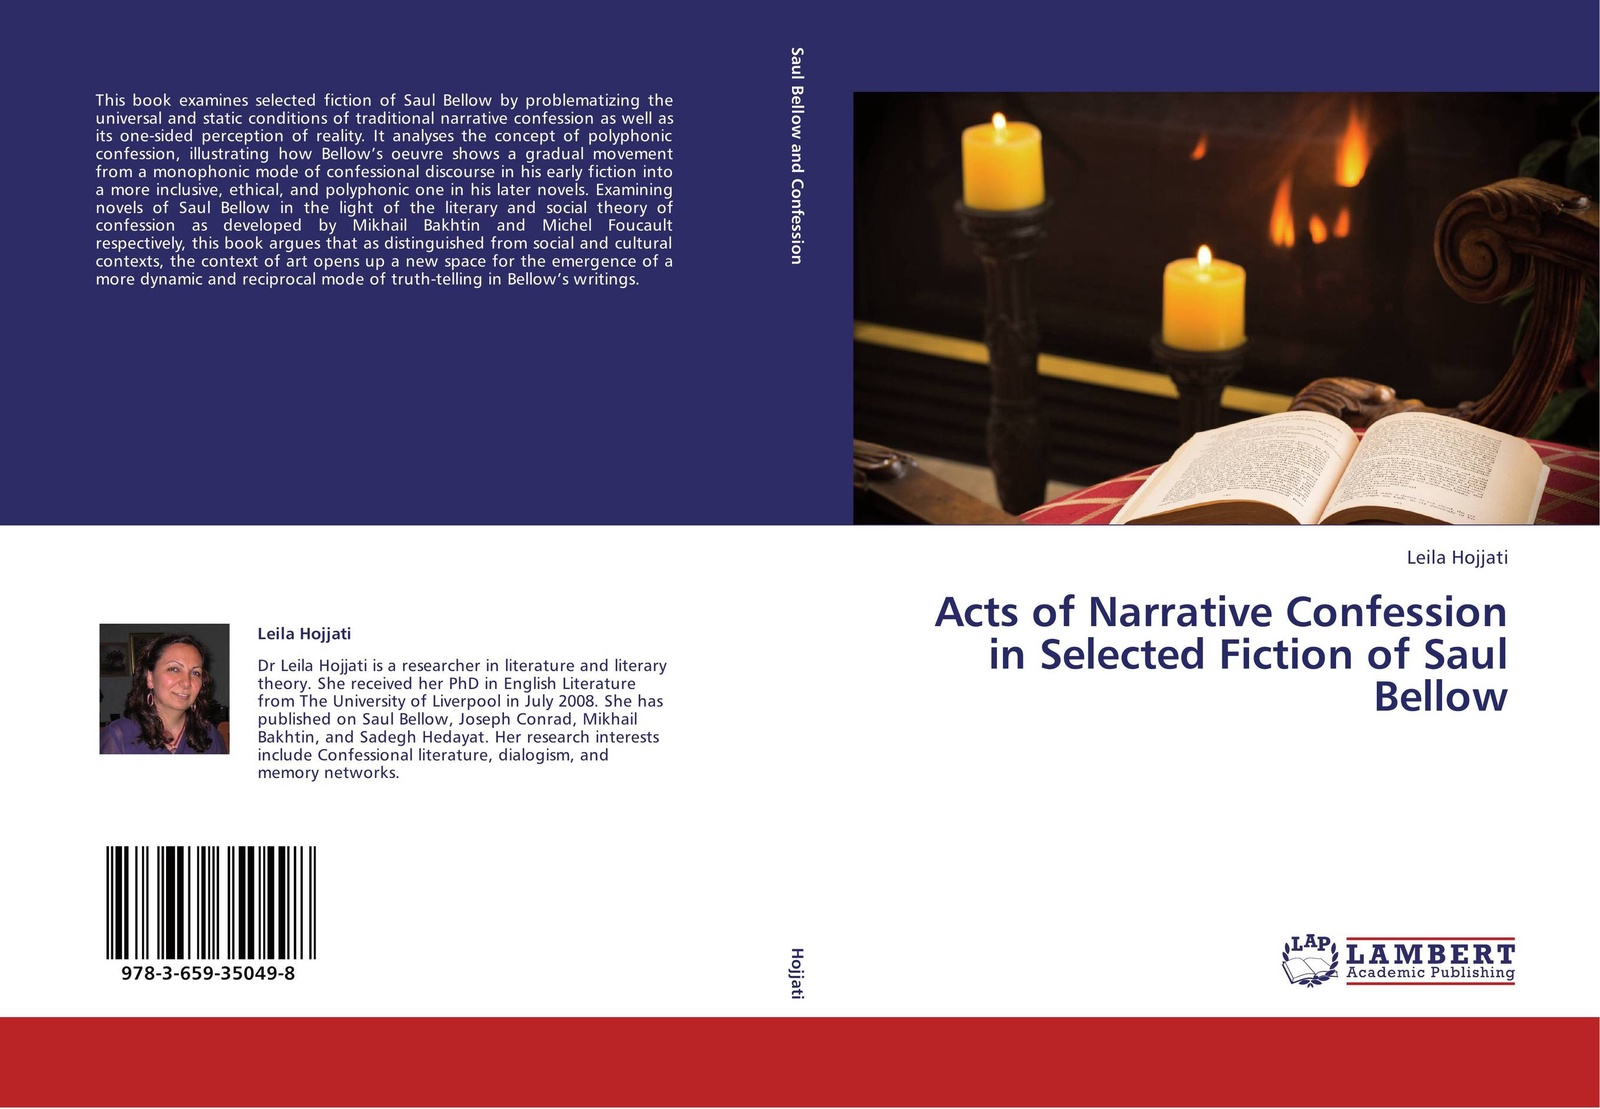 лучшая цена Leila Hojjati Acts of Narrative Confession in Selected Fiction of Saul Bellow